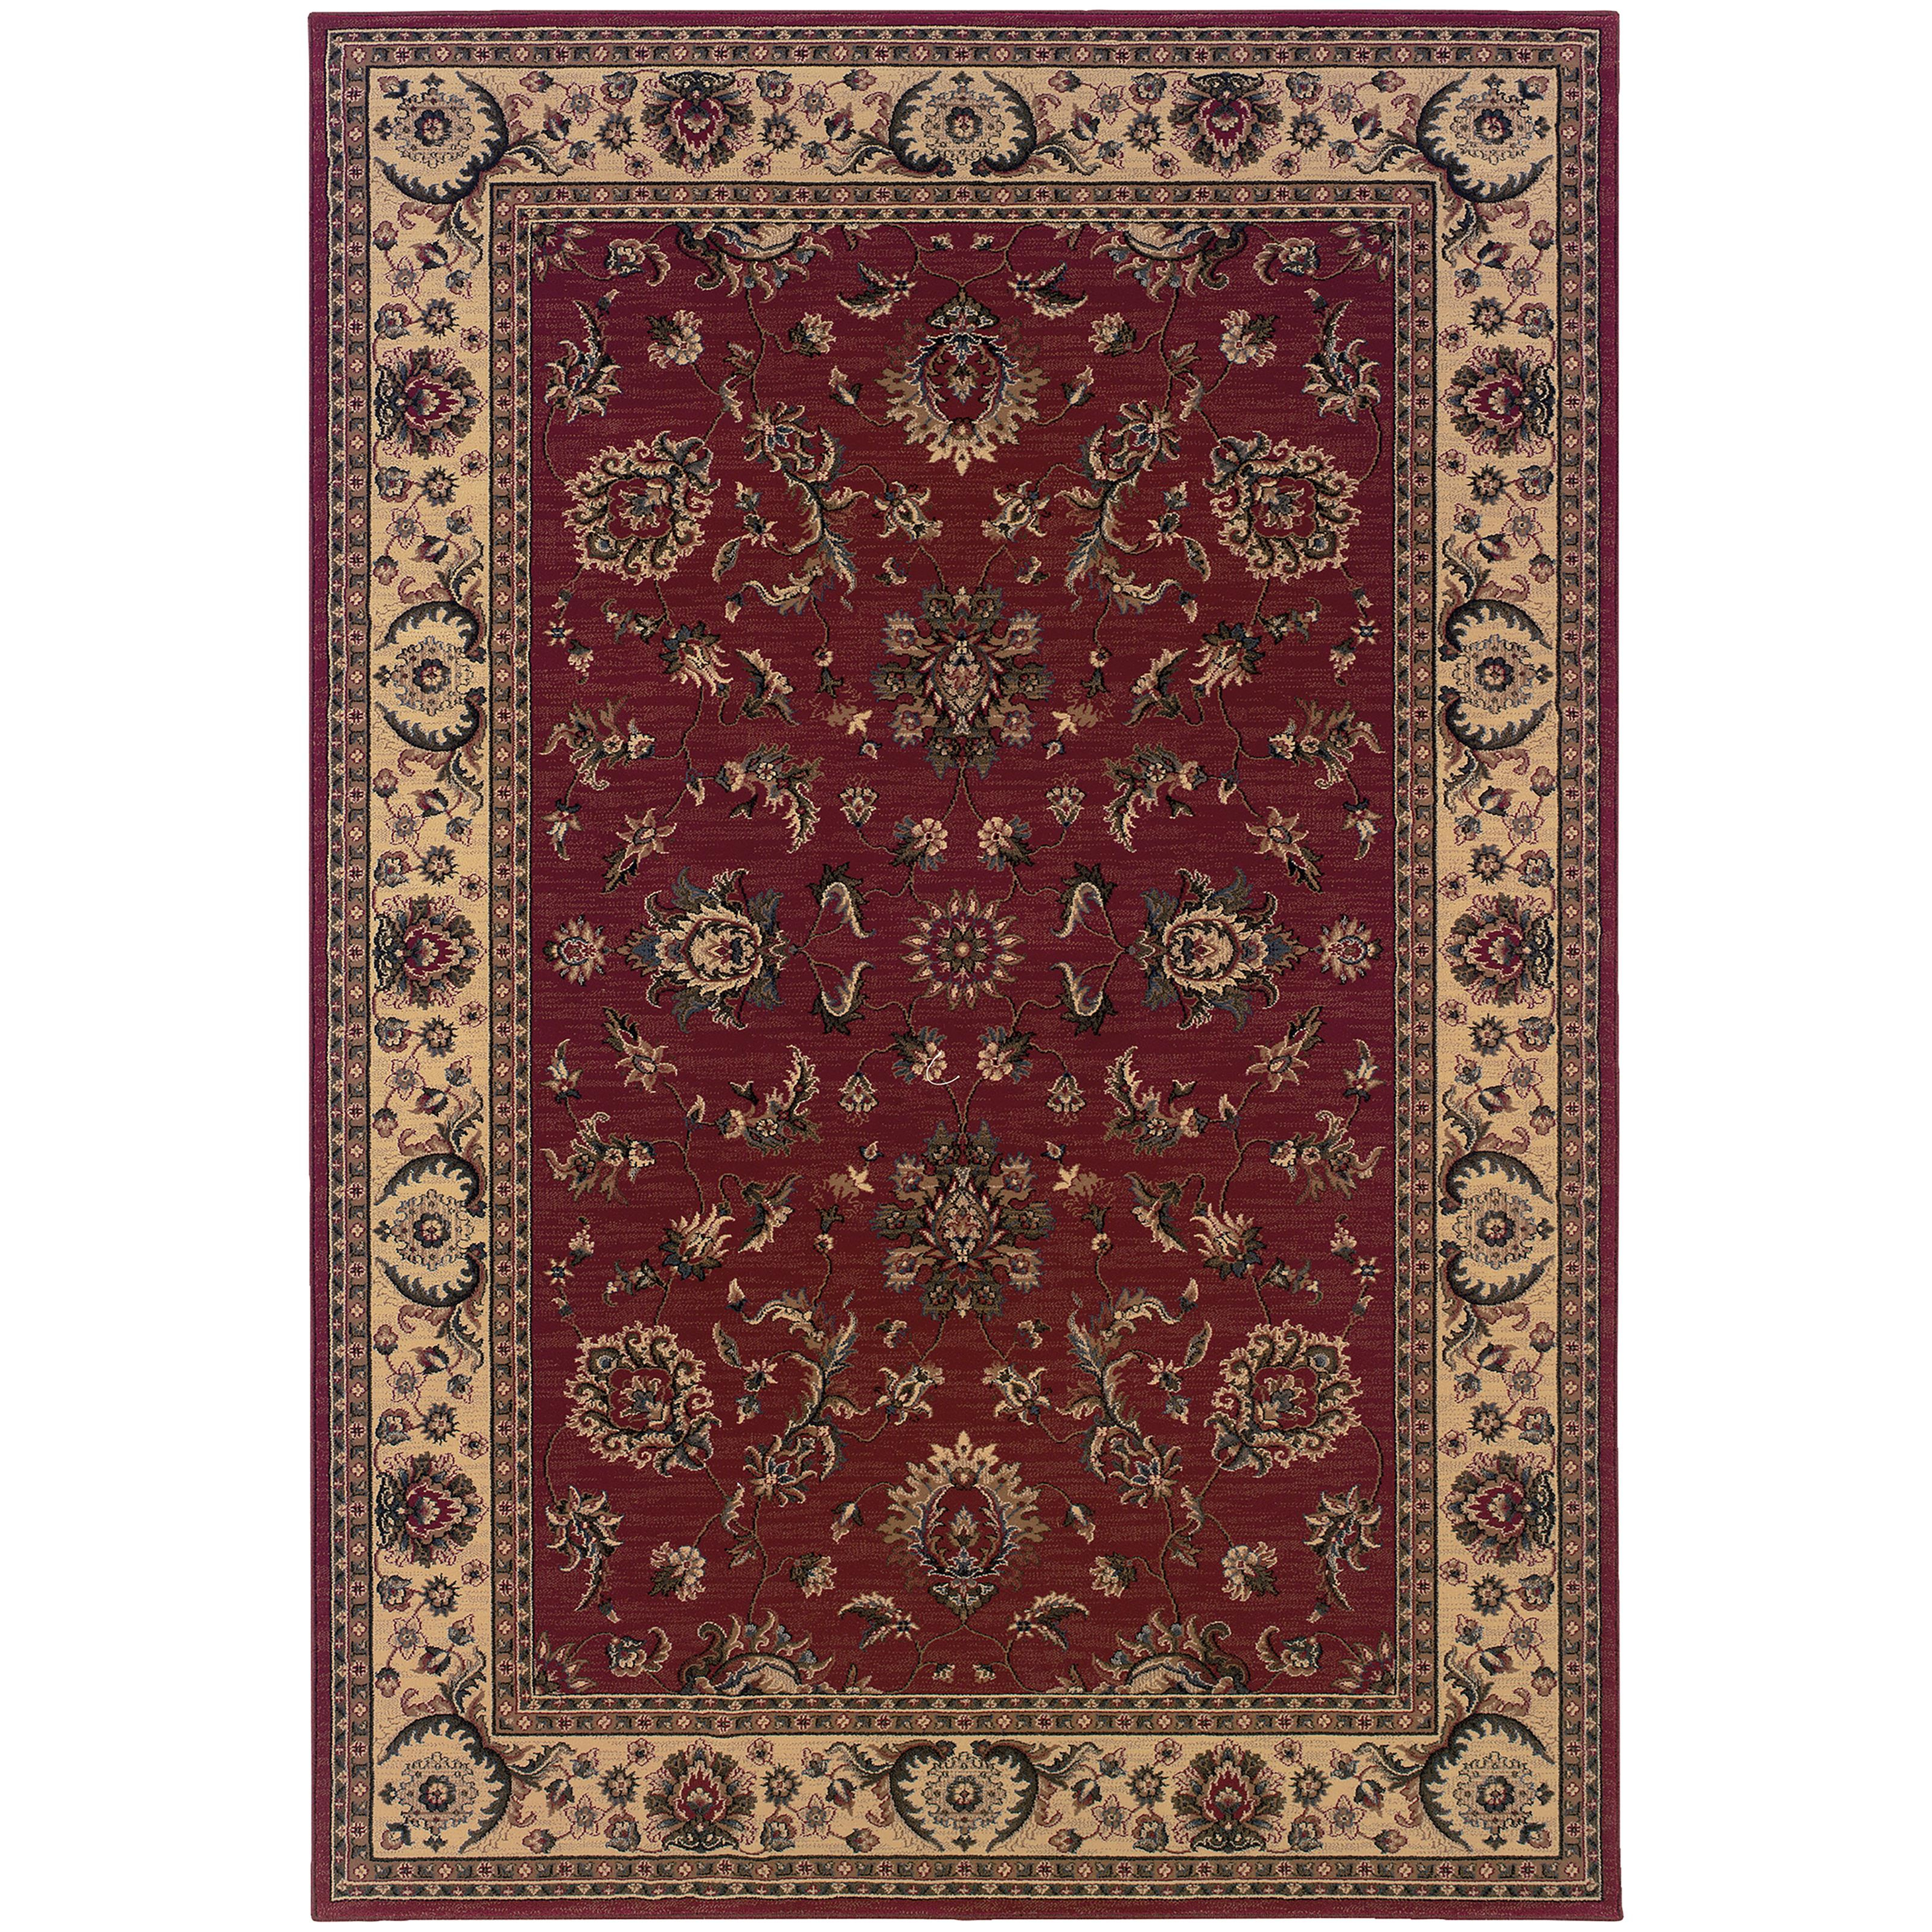 Oriental Weavers Ariana 12' X 15' Rug - Item Number: A311C3360450ST